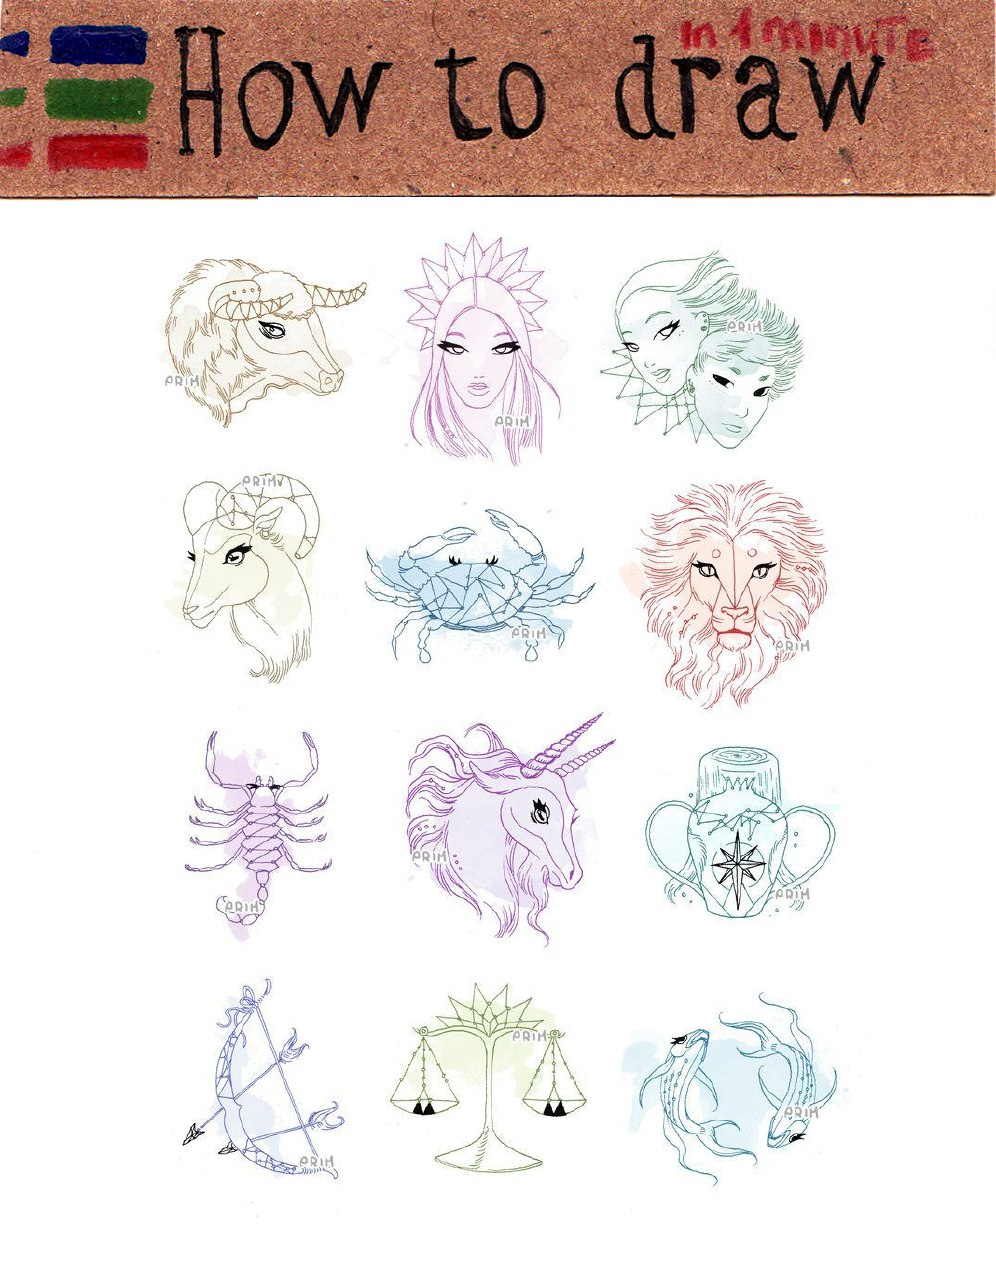 Zodiac signs: 15 free pictures